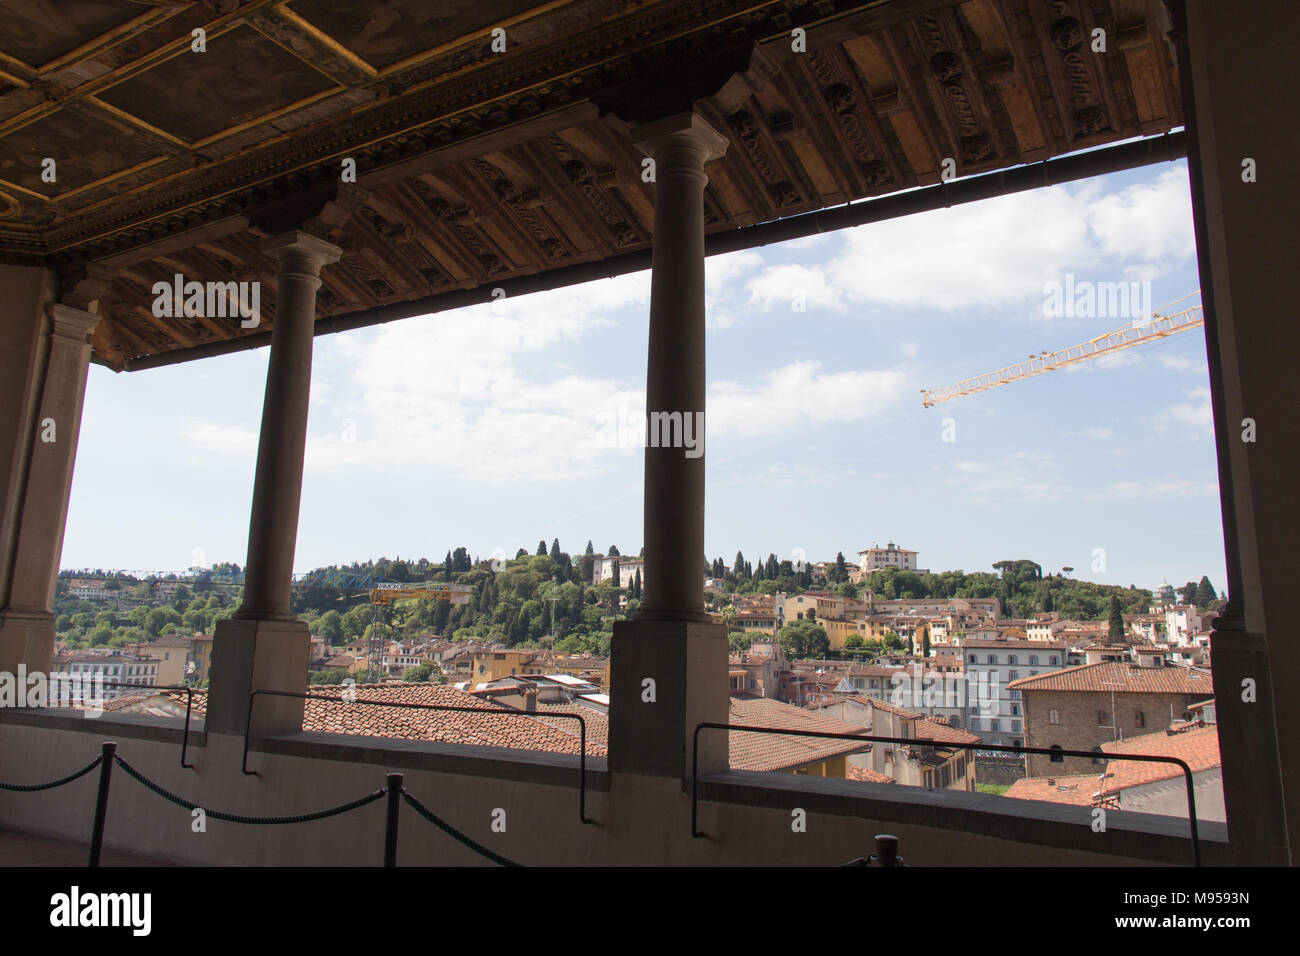 Italy, Florence - May 18 2017: the view from Terrace of Saturn at Palazzo Vecchio on May 18 2017 in Florence, Italy. Stock Photo